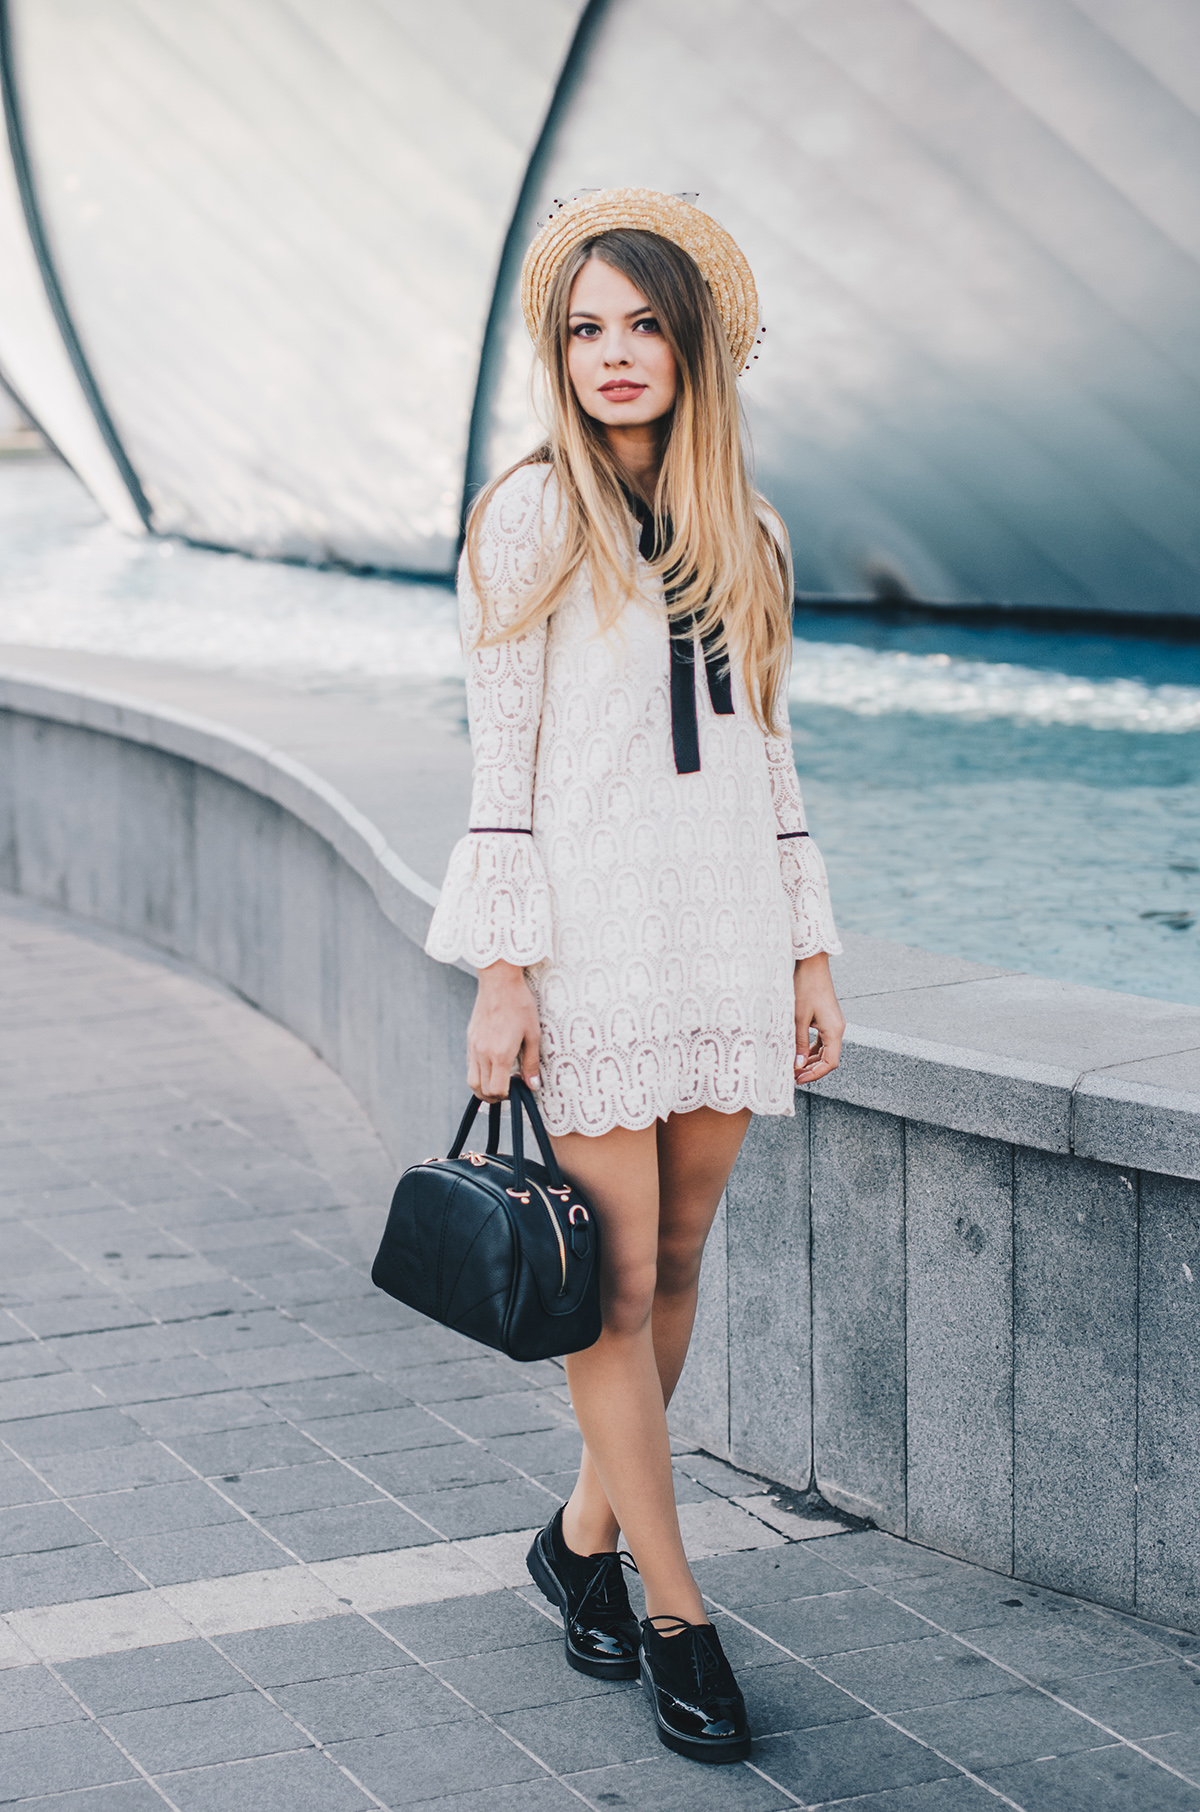 lace-dress-bell-sleeves-straw-hat-oxford-shoes-4